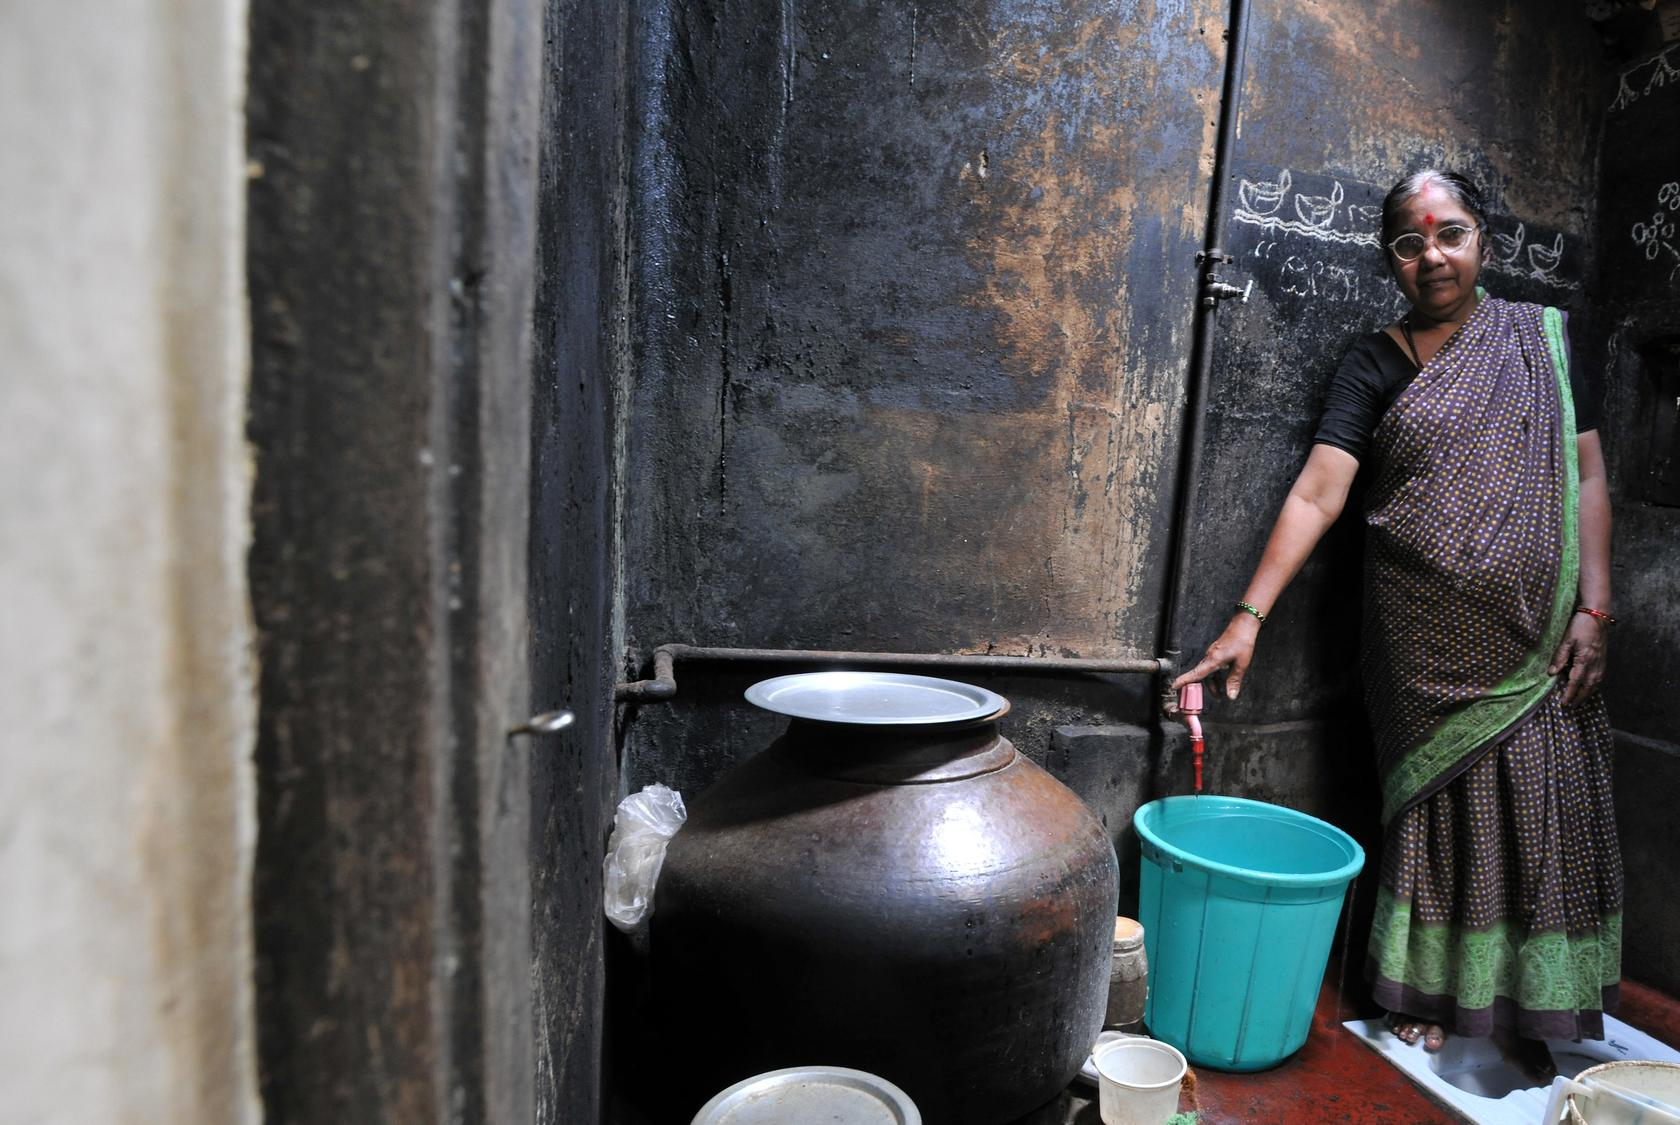 Toilets to provide freedom, health and dignity to women